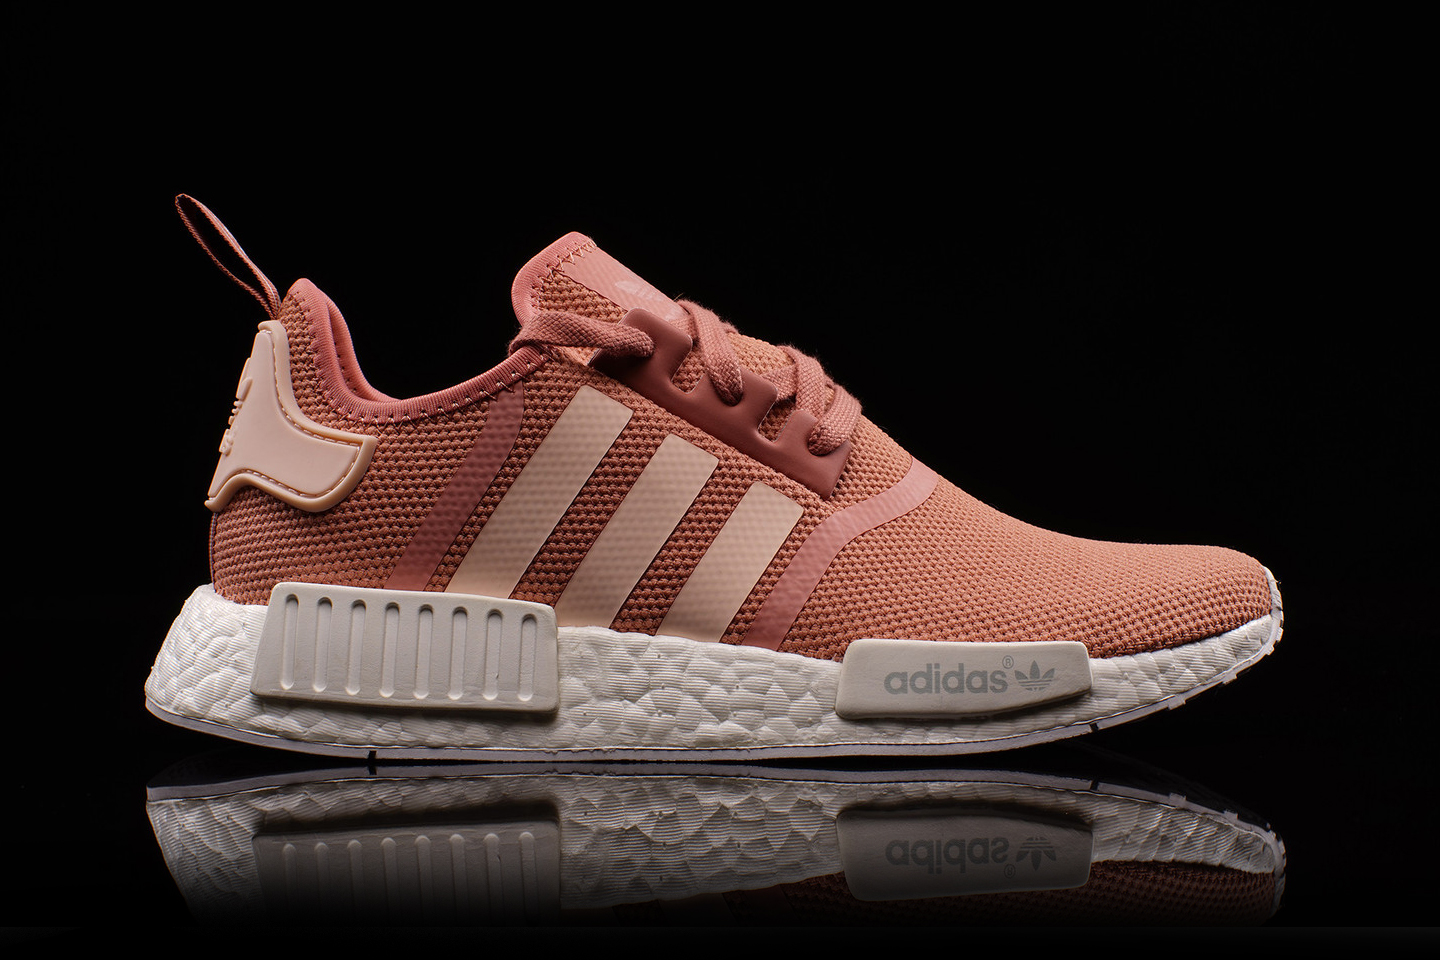 Adidas NMD Female adidasnmdwomensuk.co.uk b1107f7529e7